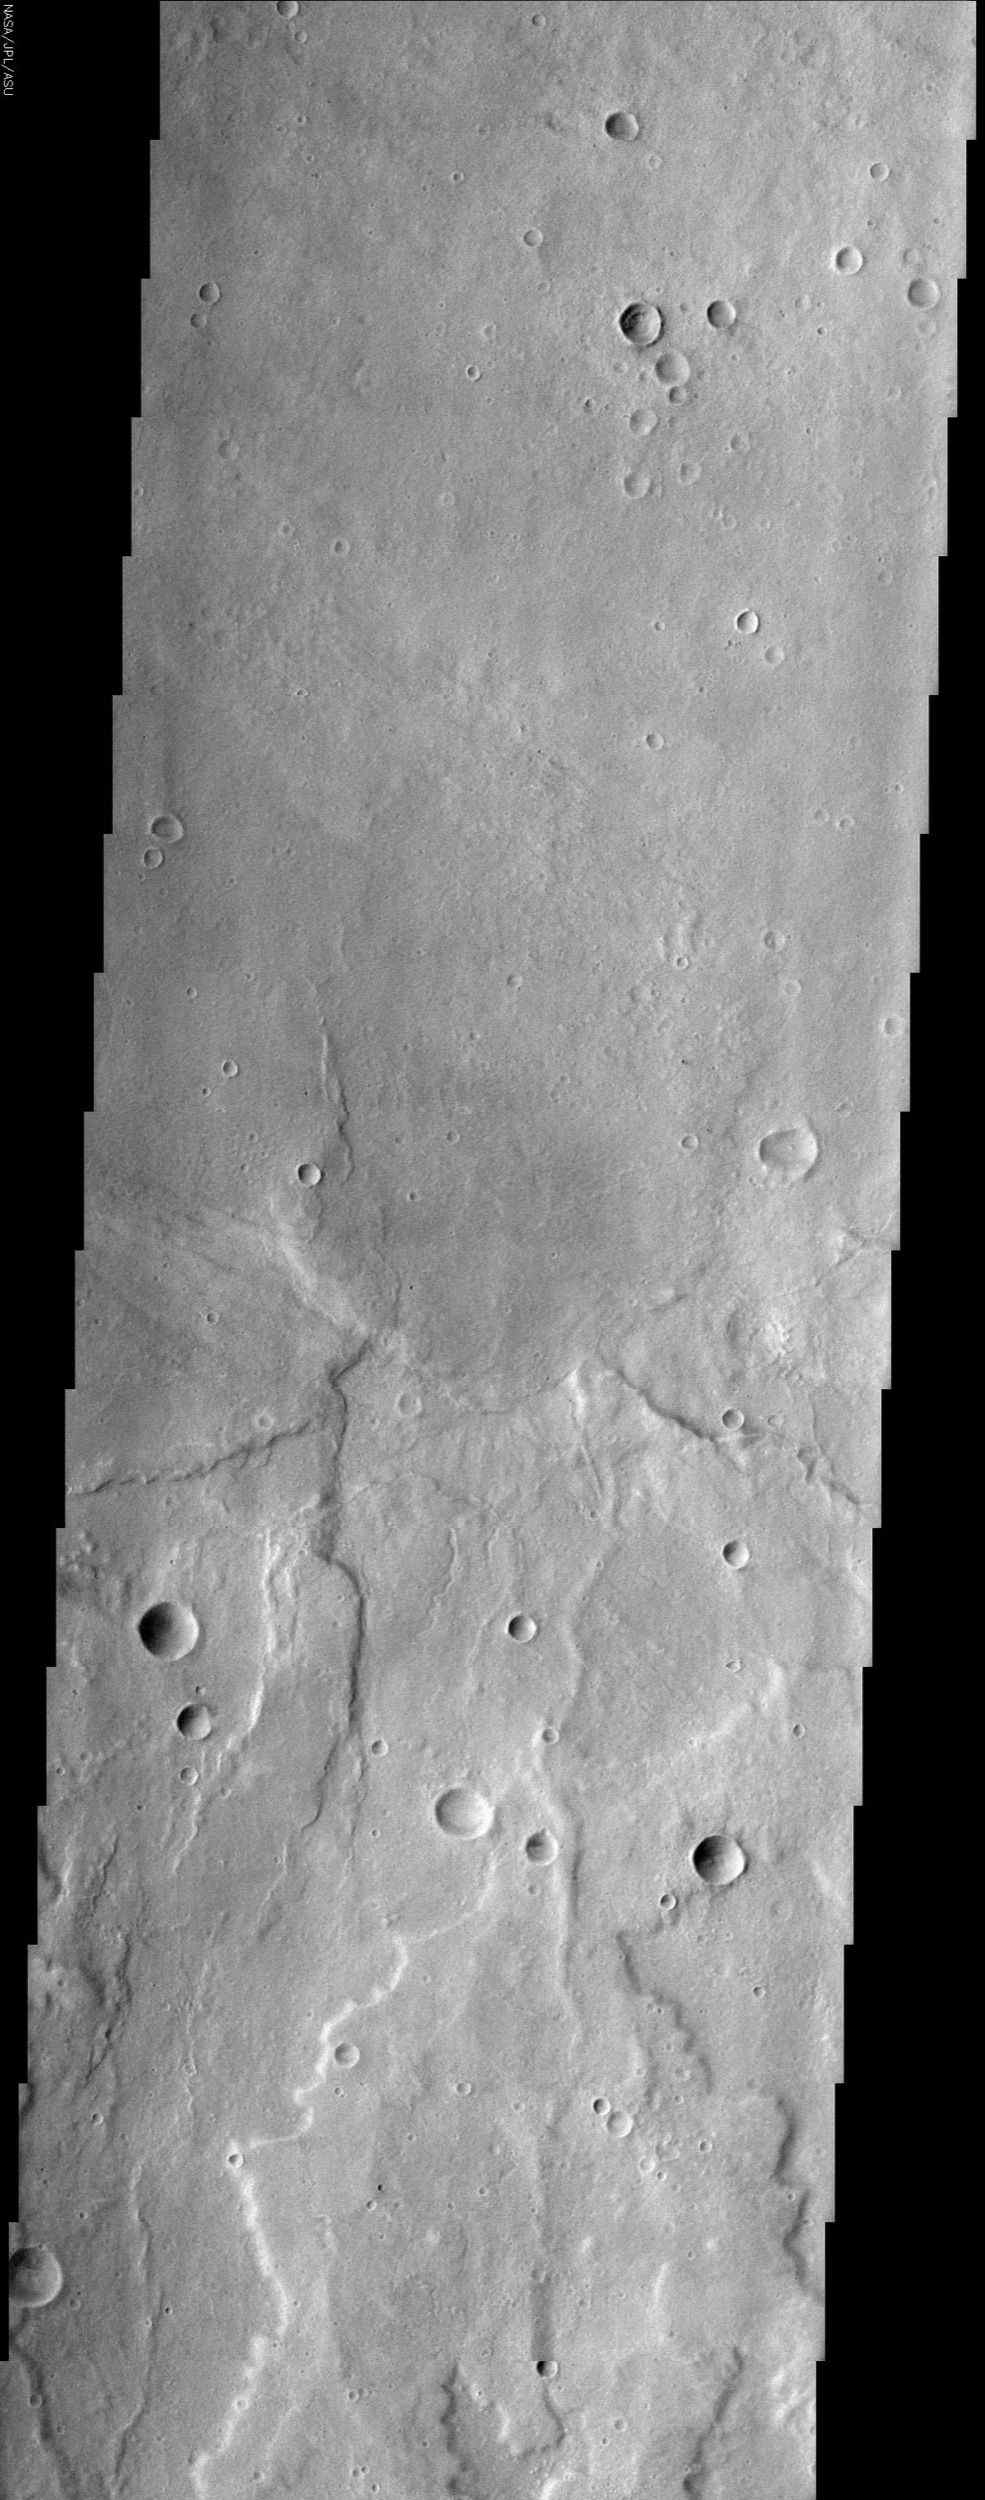 Although the largest volcanoes on Mars (and in the solar system) are located in the geologically young Tharsis region, there are many Martian volcanoes that display equally interesting features, such as Hadriaca Patera in this NASA Mars Odyssey image.